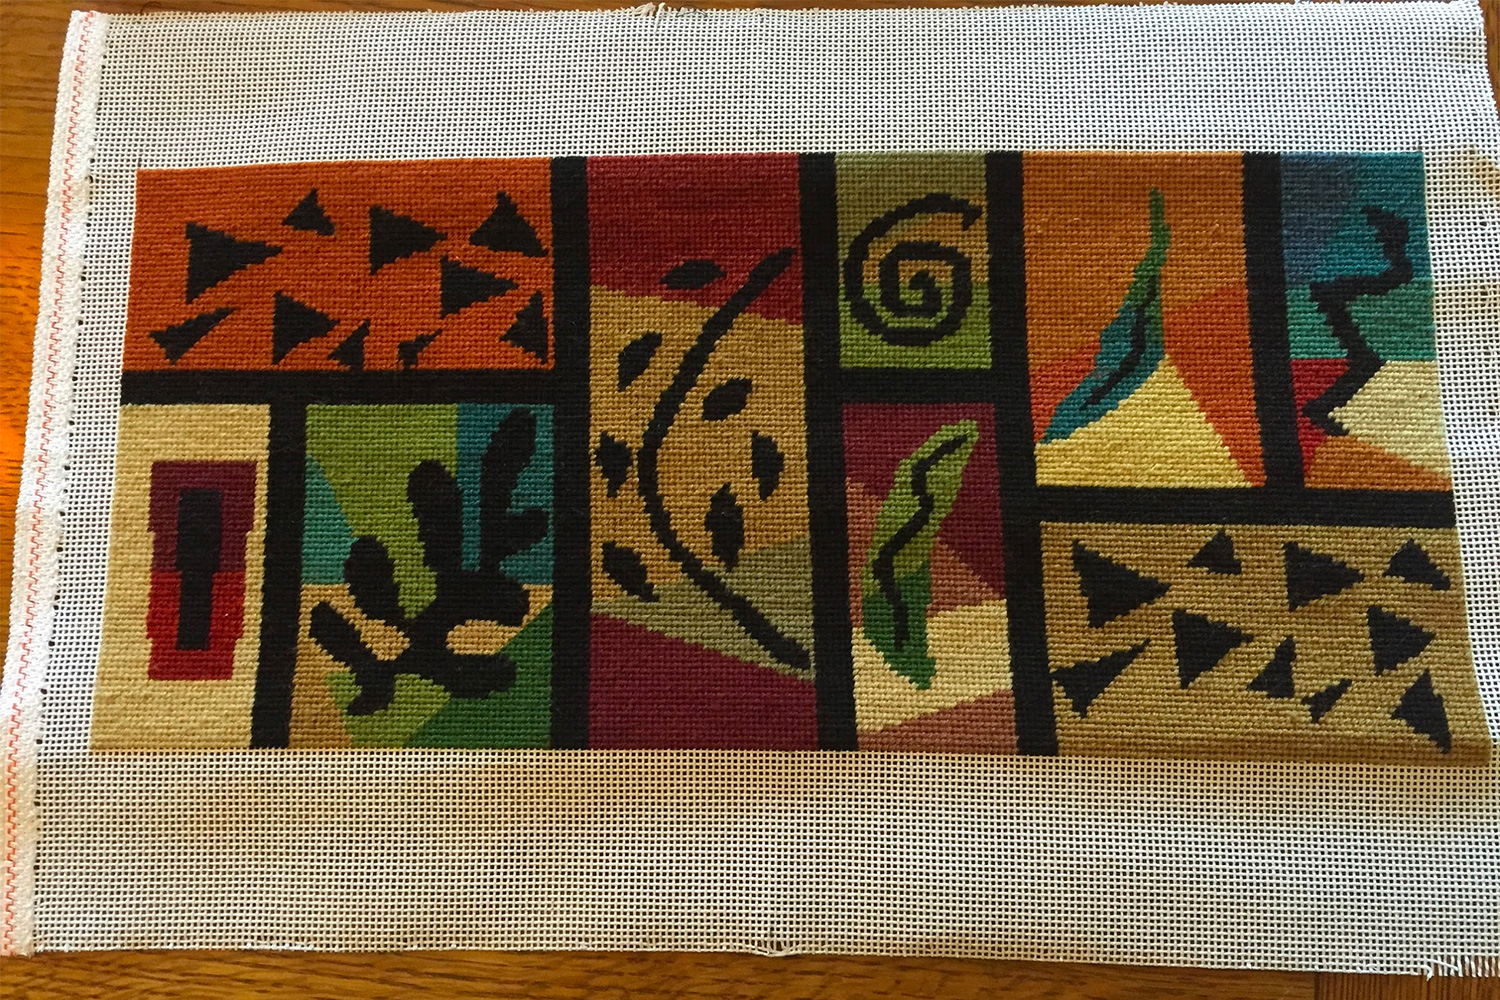 Completed lectern needlepoint